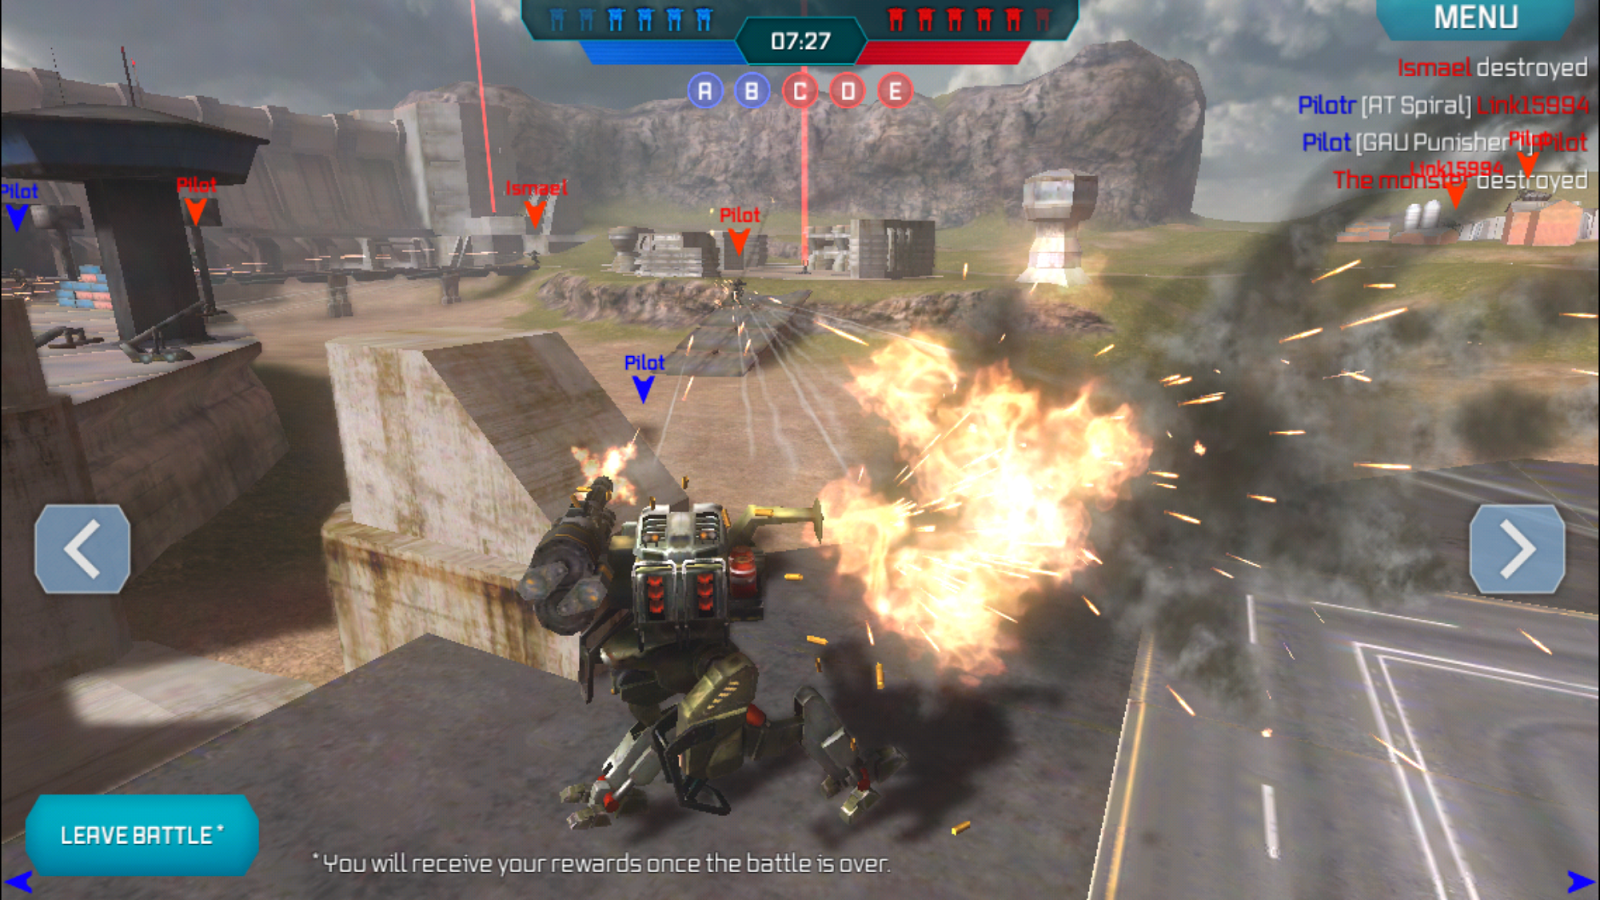 download walking war robots apk, walking war robots review, hd android game walking war robots